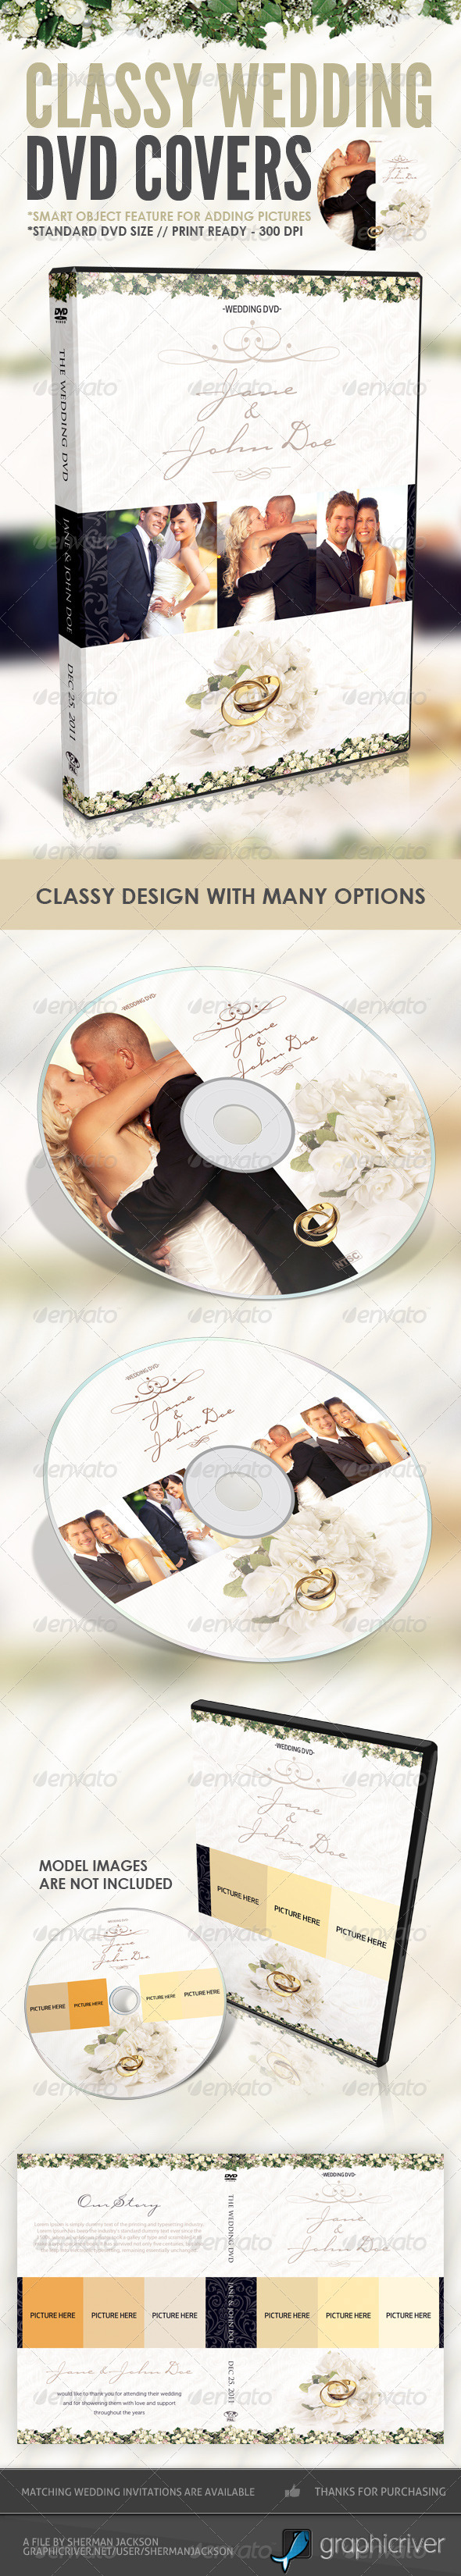 Classy Wedding DVD Covers - CD & DVD artwork Print Templates